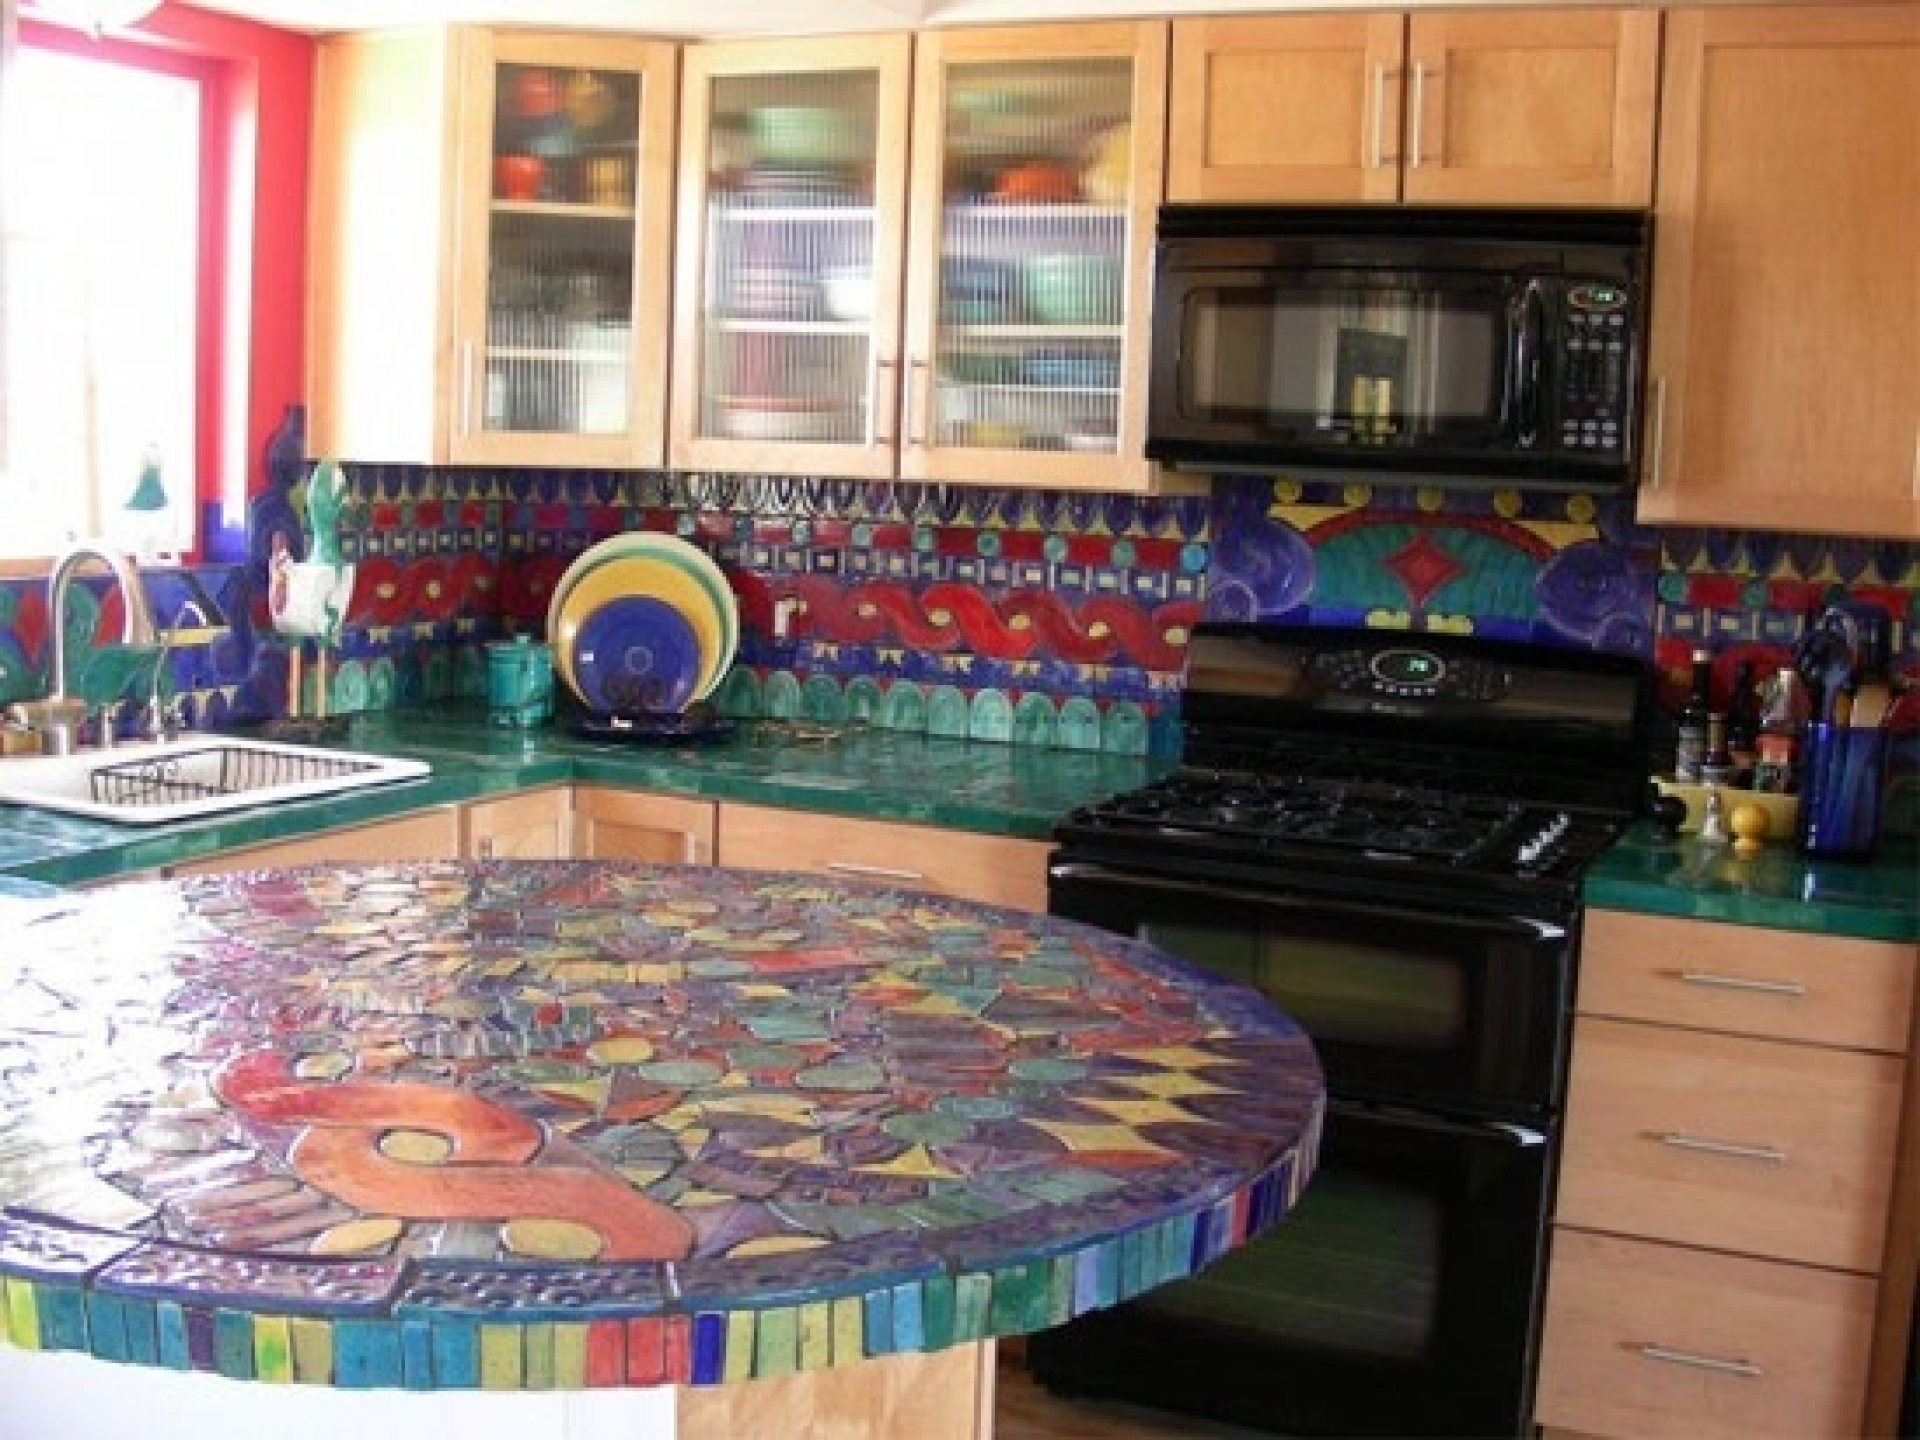 Colourful Tiles On Mosaic Ideas For Kitchen (Image 3 of 10)